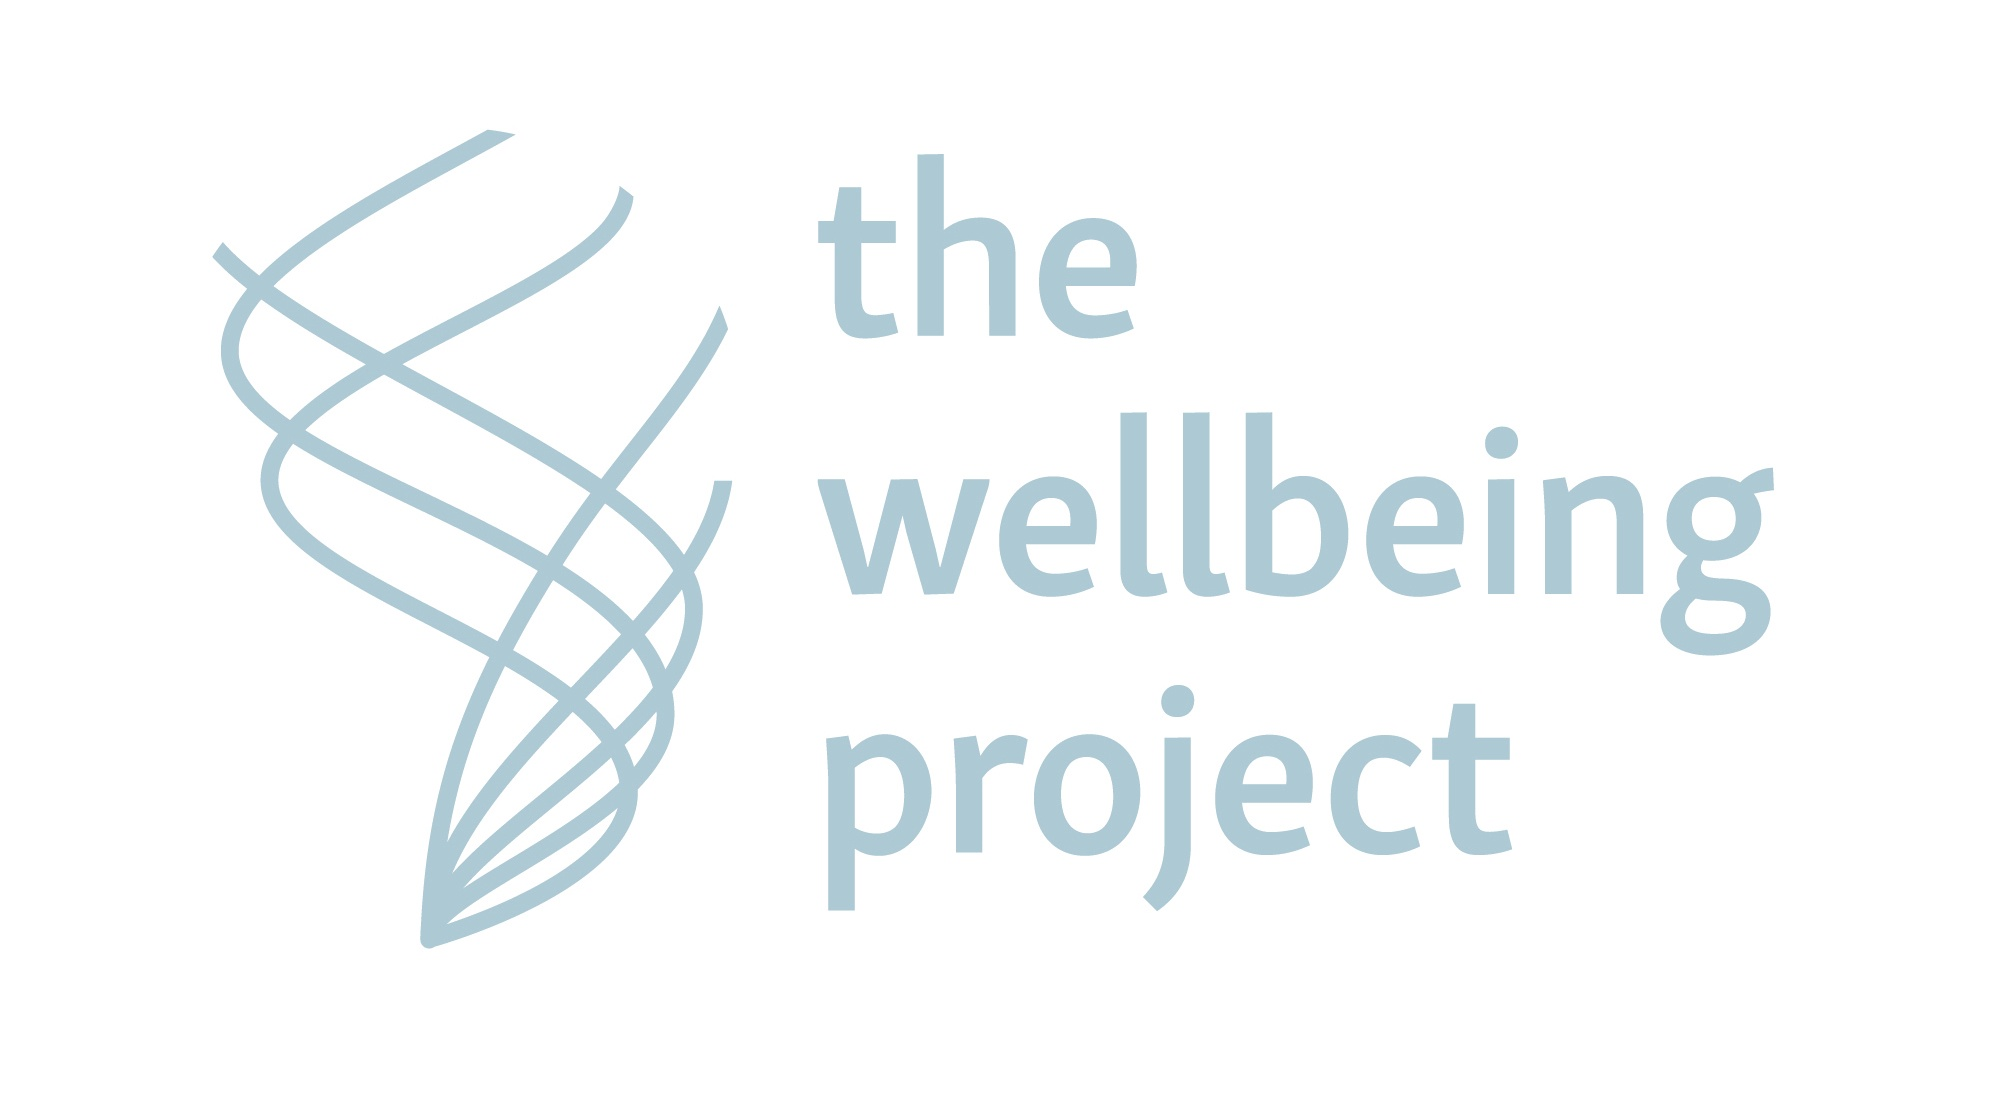 Wellbeing project logo